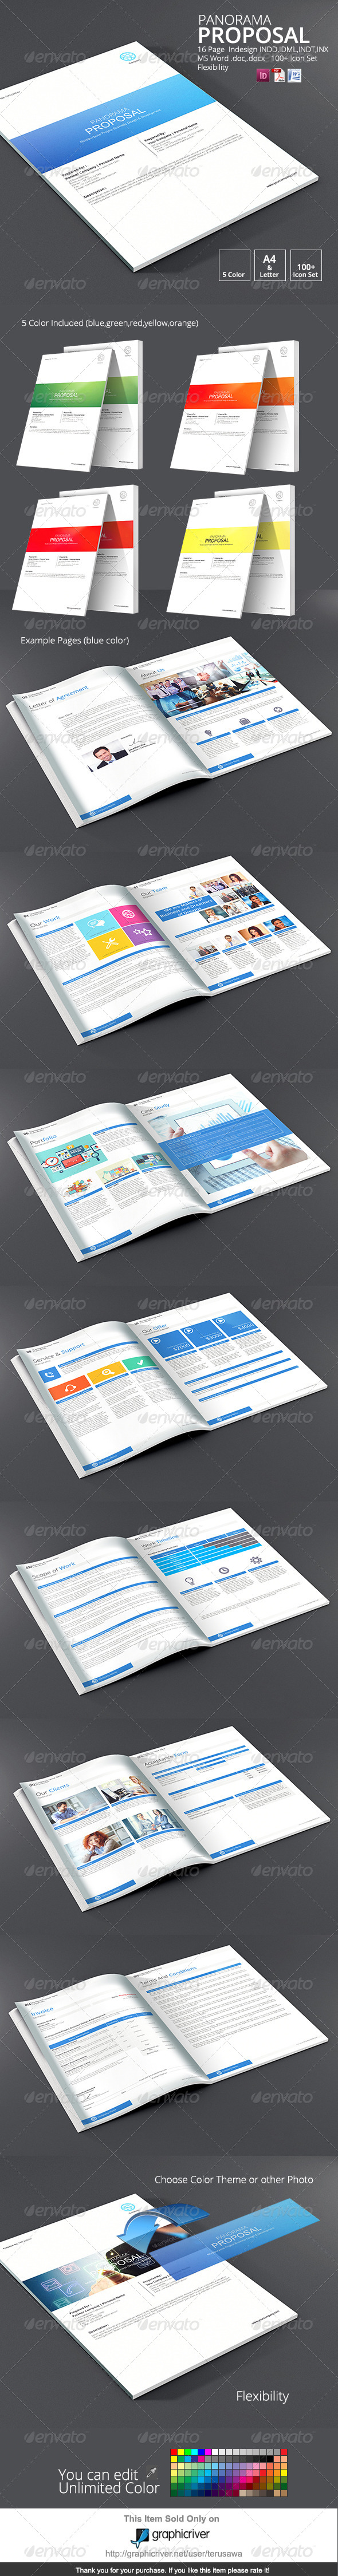 GraphicRiver Gstudio Panorama Proposal Template 7778349